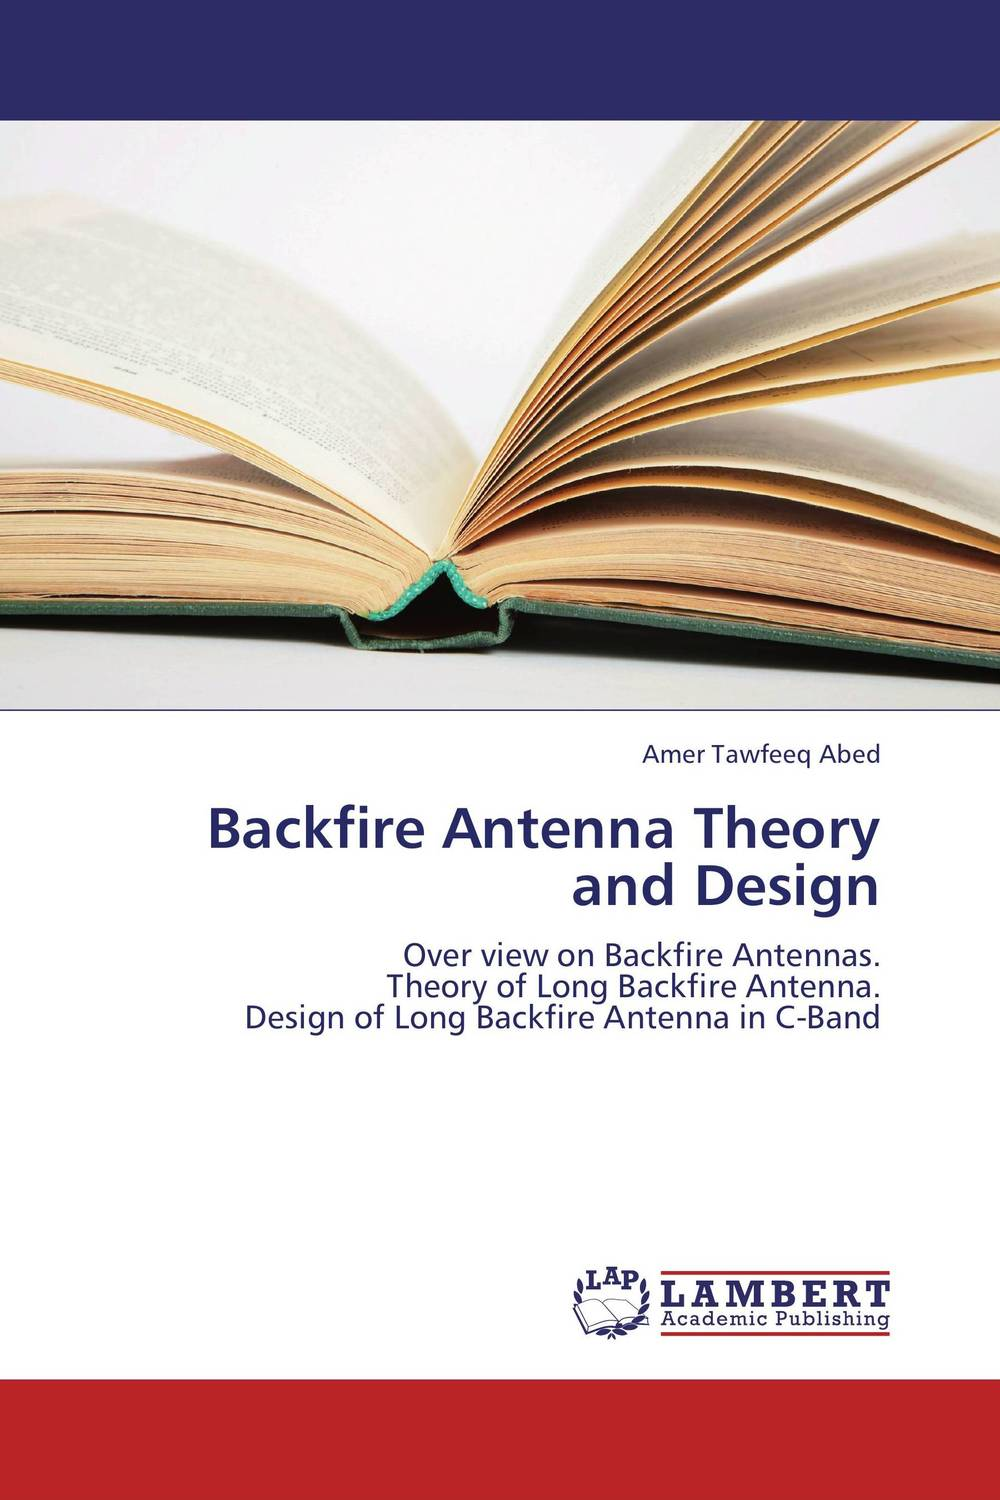 Backfire Antenna Theory and Design